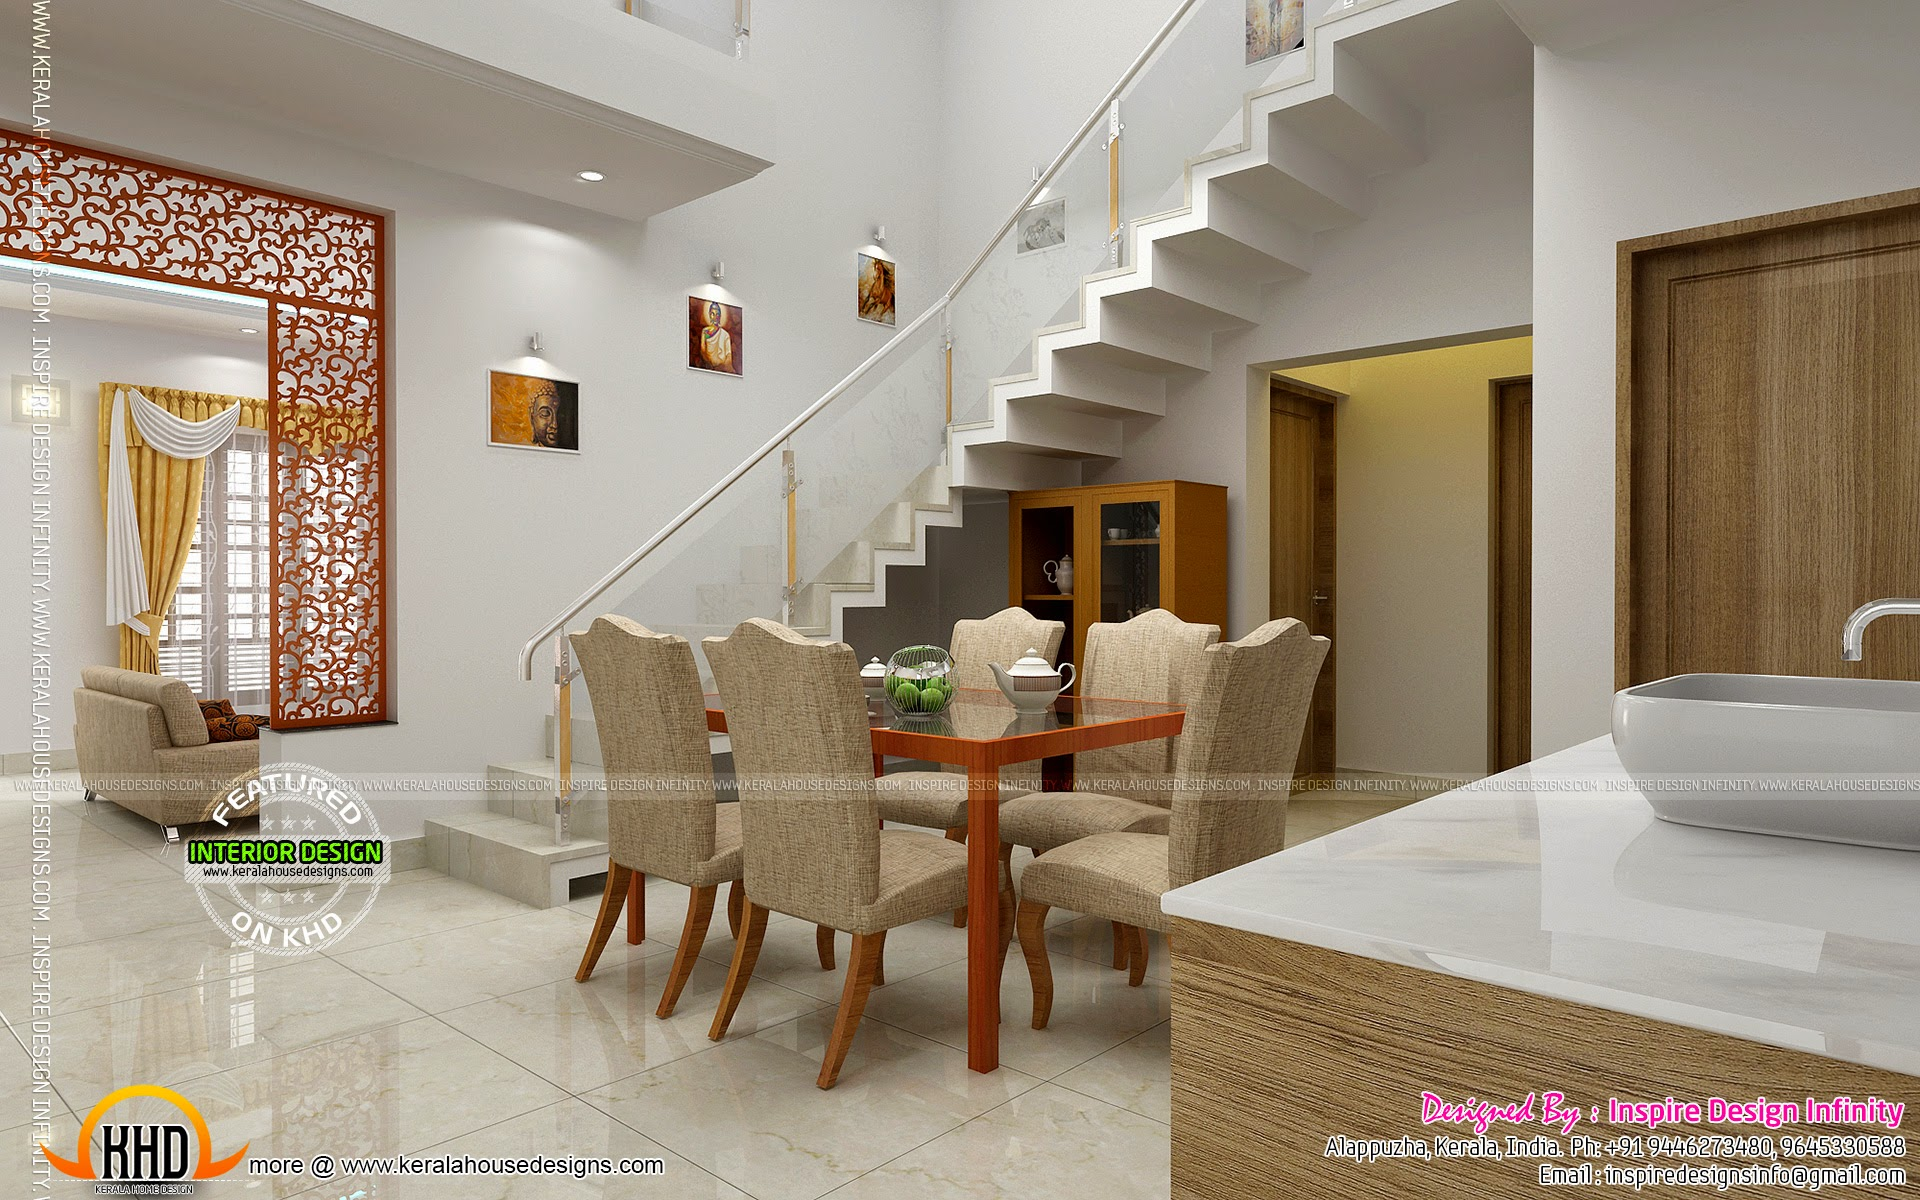 Dining room designs kerala home design and floor plans for Dining designs pictures